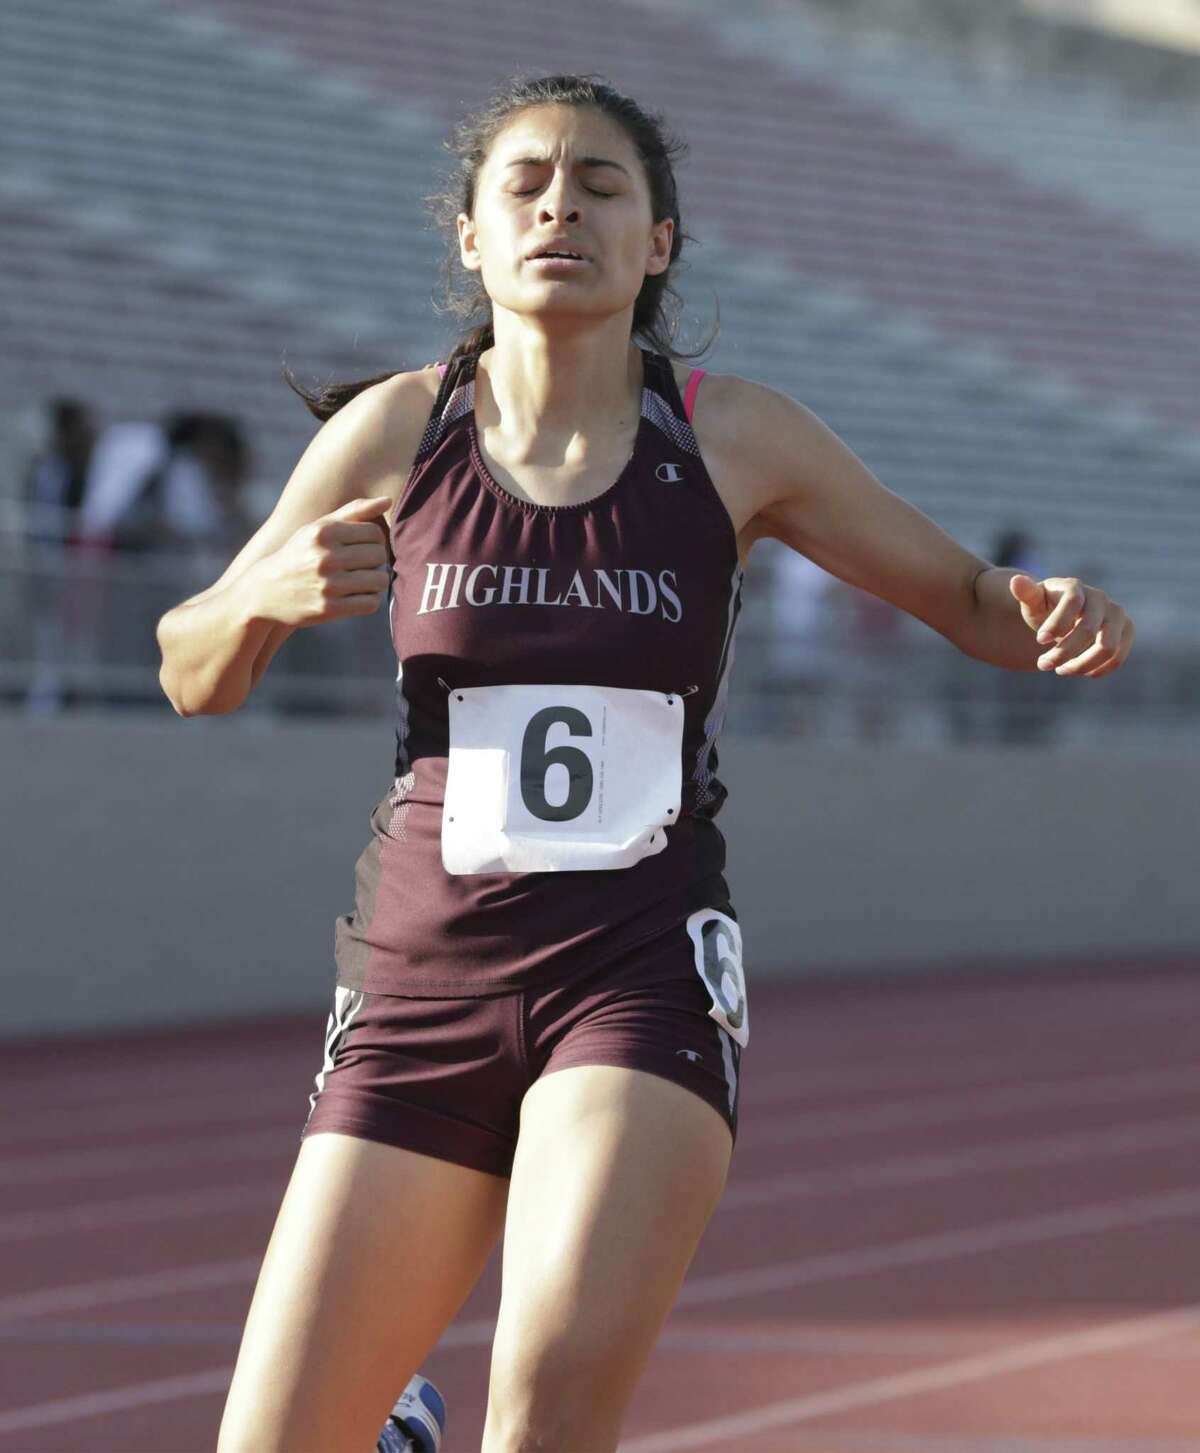 Highlands junior Astrid Gamez touches the finish line well ahead of all other competitors in the 800 meter race at the District 27-5A track meet at Alamo Stadium on April 4, 2019.